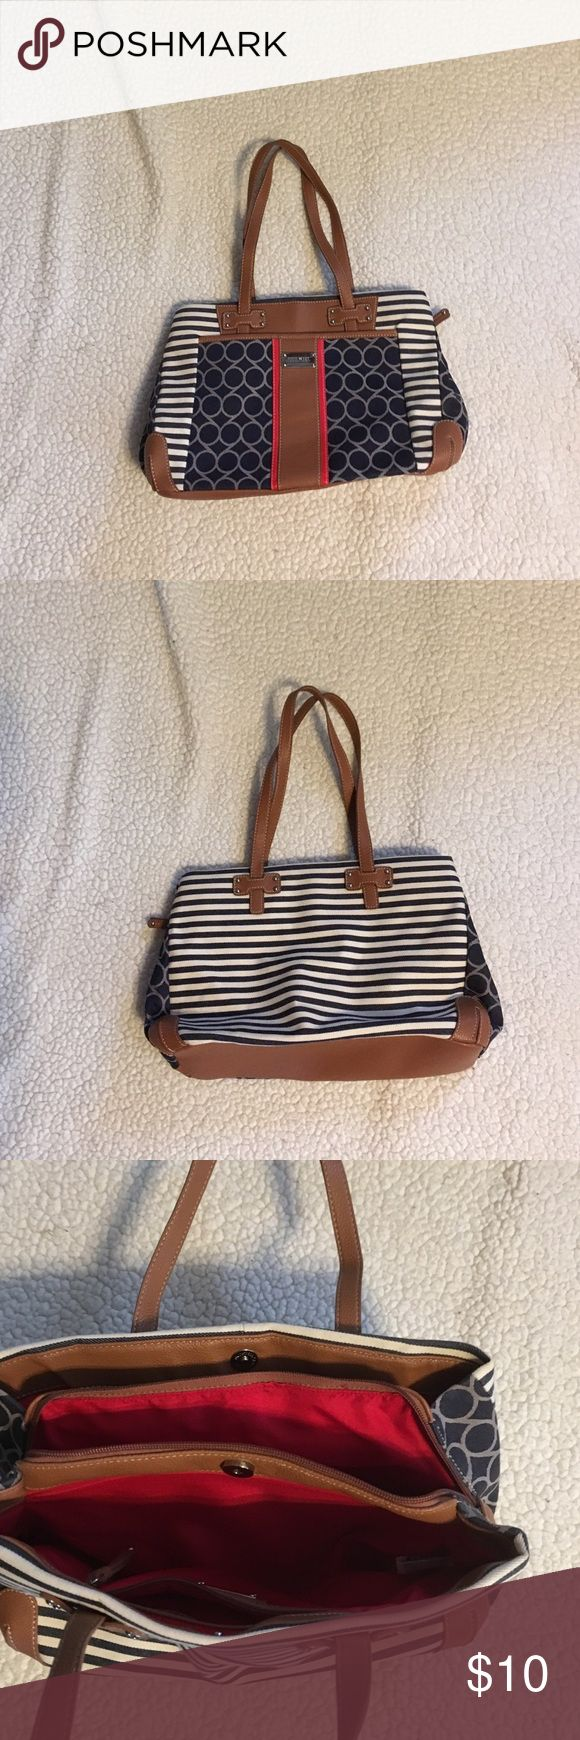 """Nine West Purse Multiple Compartments Medium Size Nine West double handle purse. The purse is used but in very good condition. Navy blue and white with brown trim. Purse measures 13 x 9 x 4"""". Nine West Bags Satchels"""